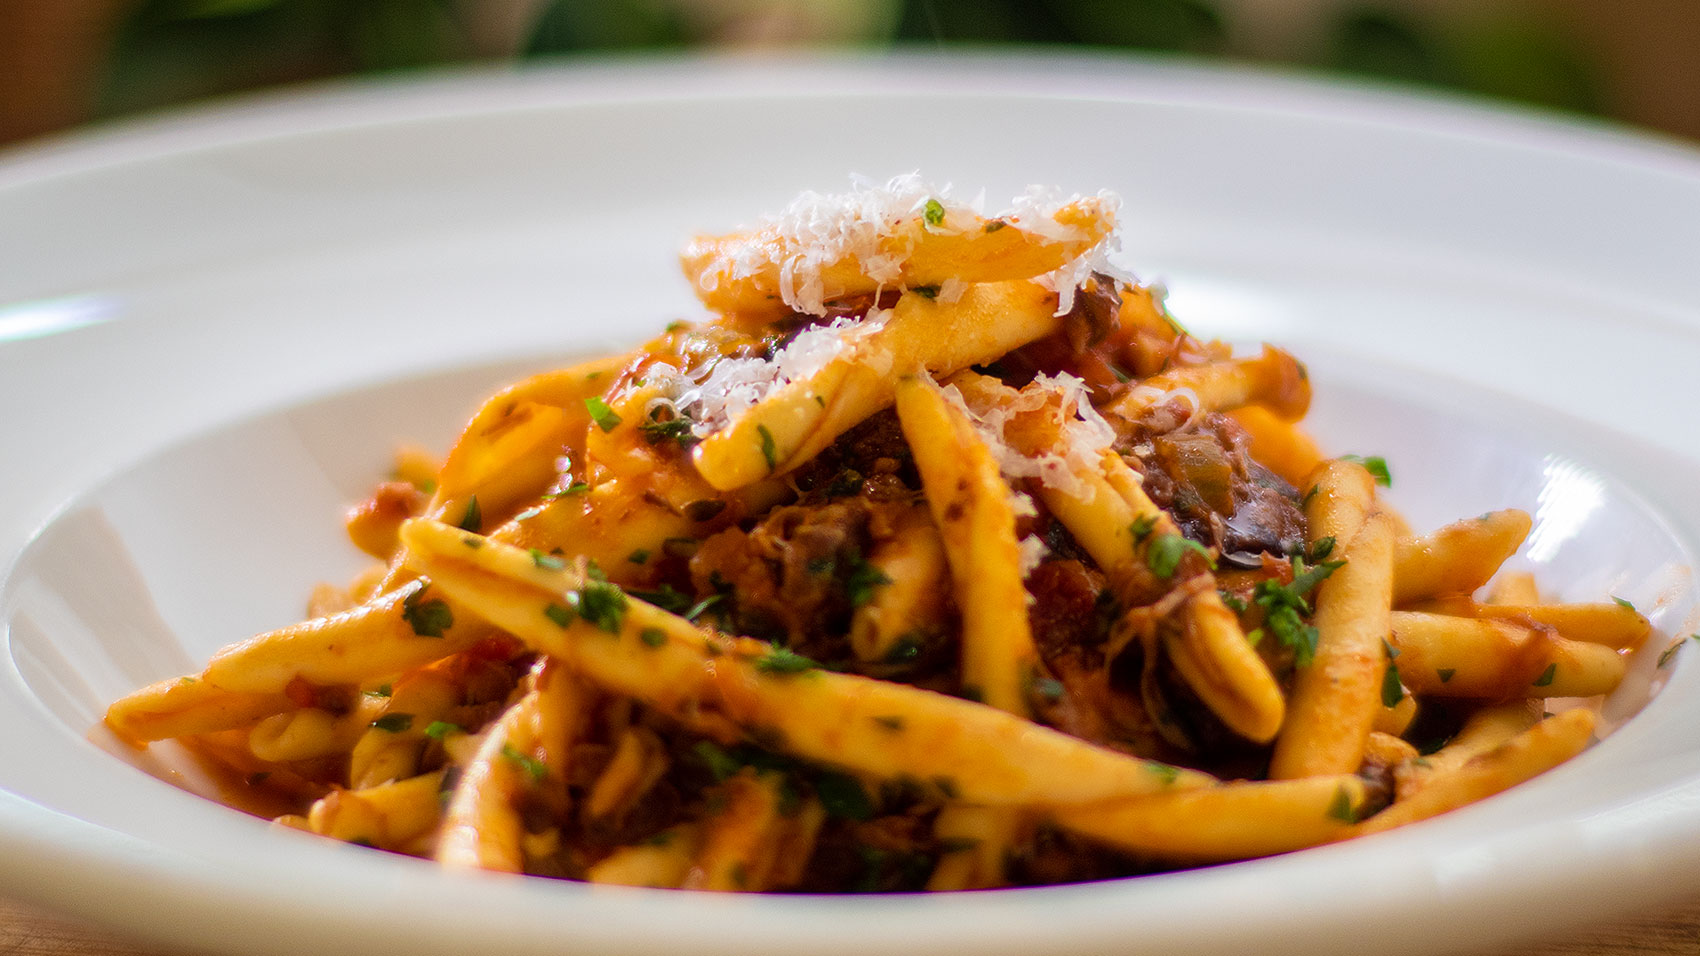 Lamb Ragu Pasta Easy Meals With Video Recipes By Chef Joel Mielle Recipe30